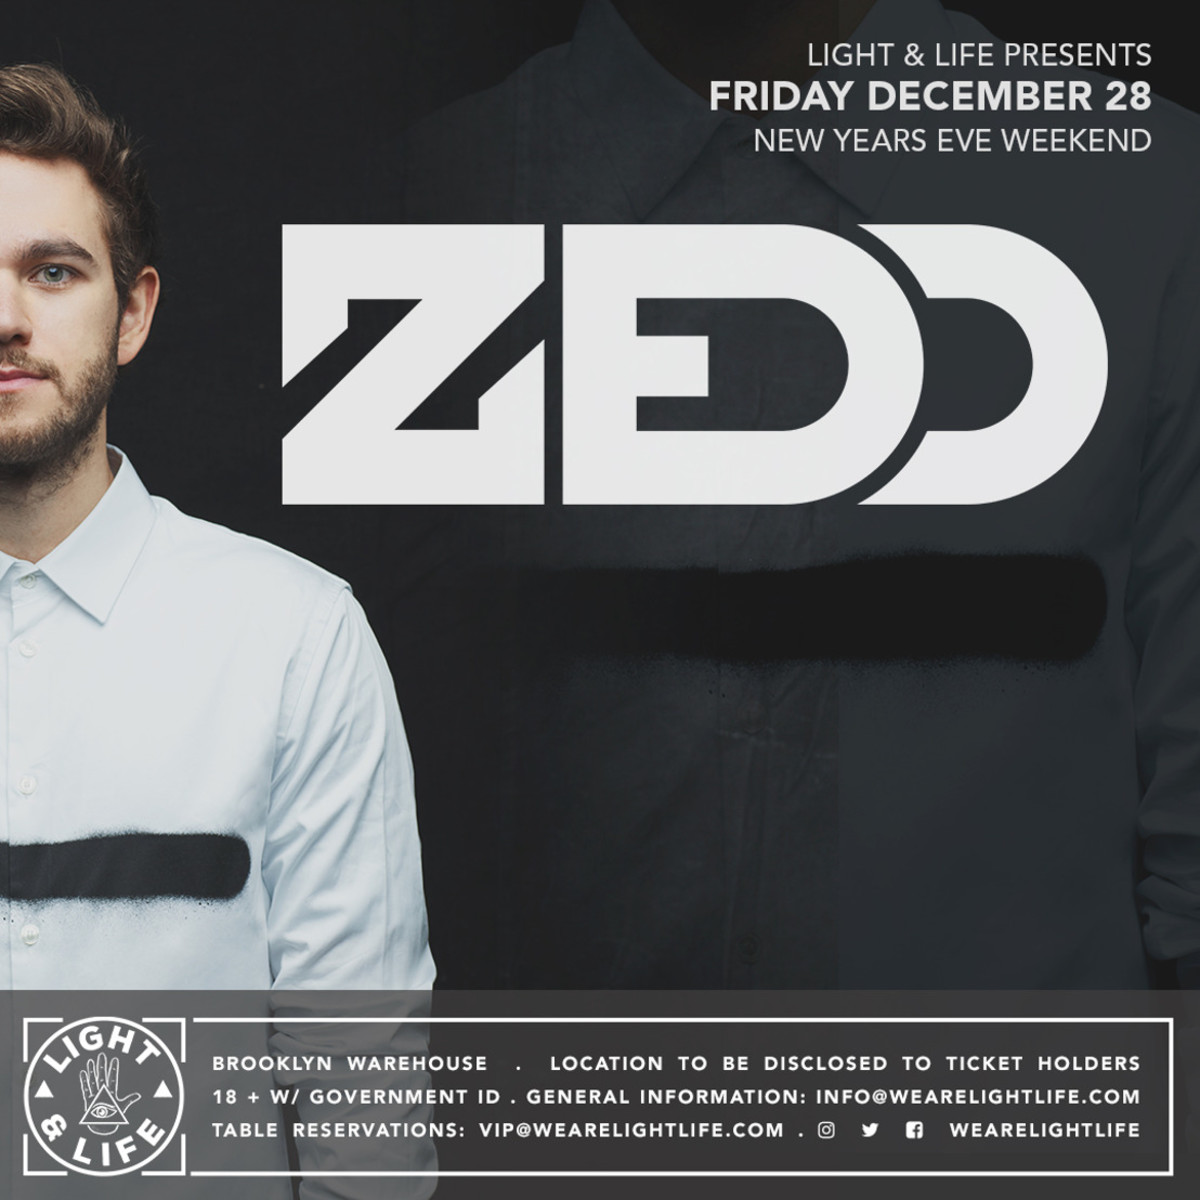 Zedd NYE weekend in Brooklyn presented by Light & Life